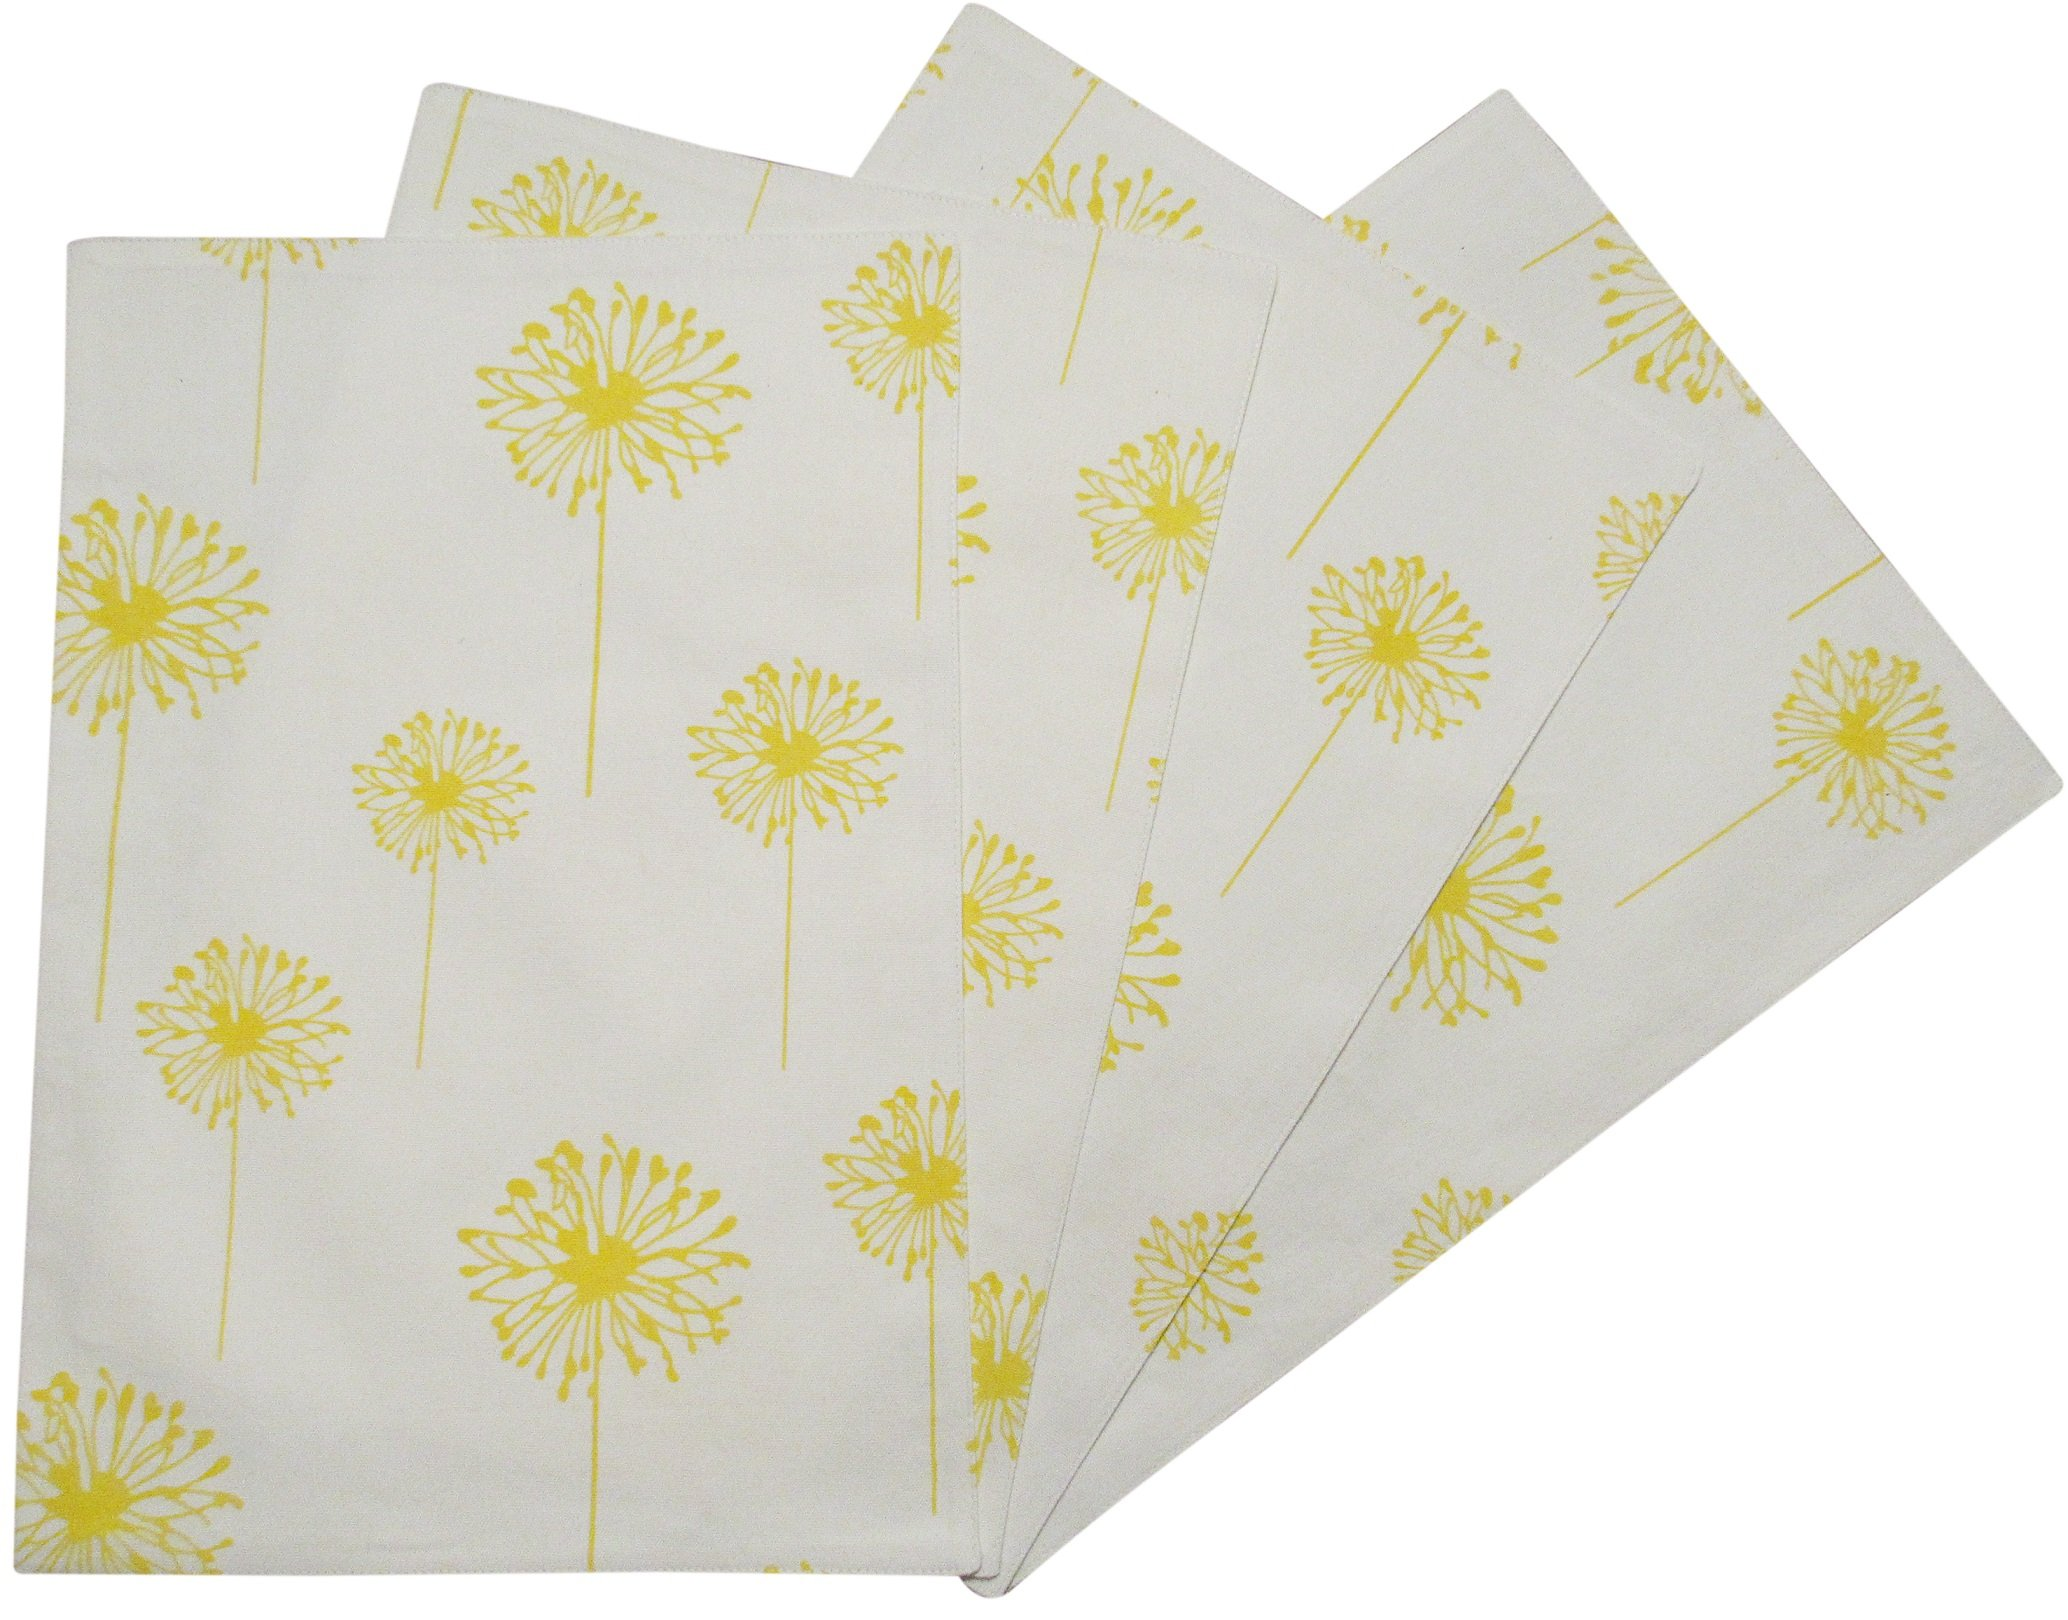 Crabtree Collection Yellow Dandelion Table Placemat Set by The Top 4-Pack Place Mats from 100% Cotton| Fresh, Trendy Design & Eye-Catching Colors| Dining Table Accessory for Home, Restaurant, Café